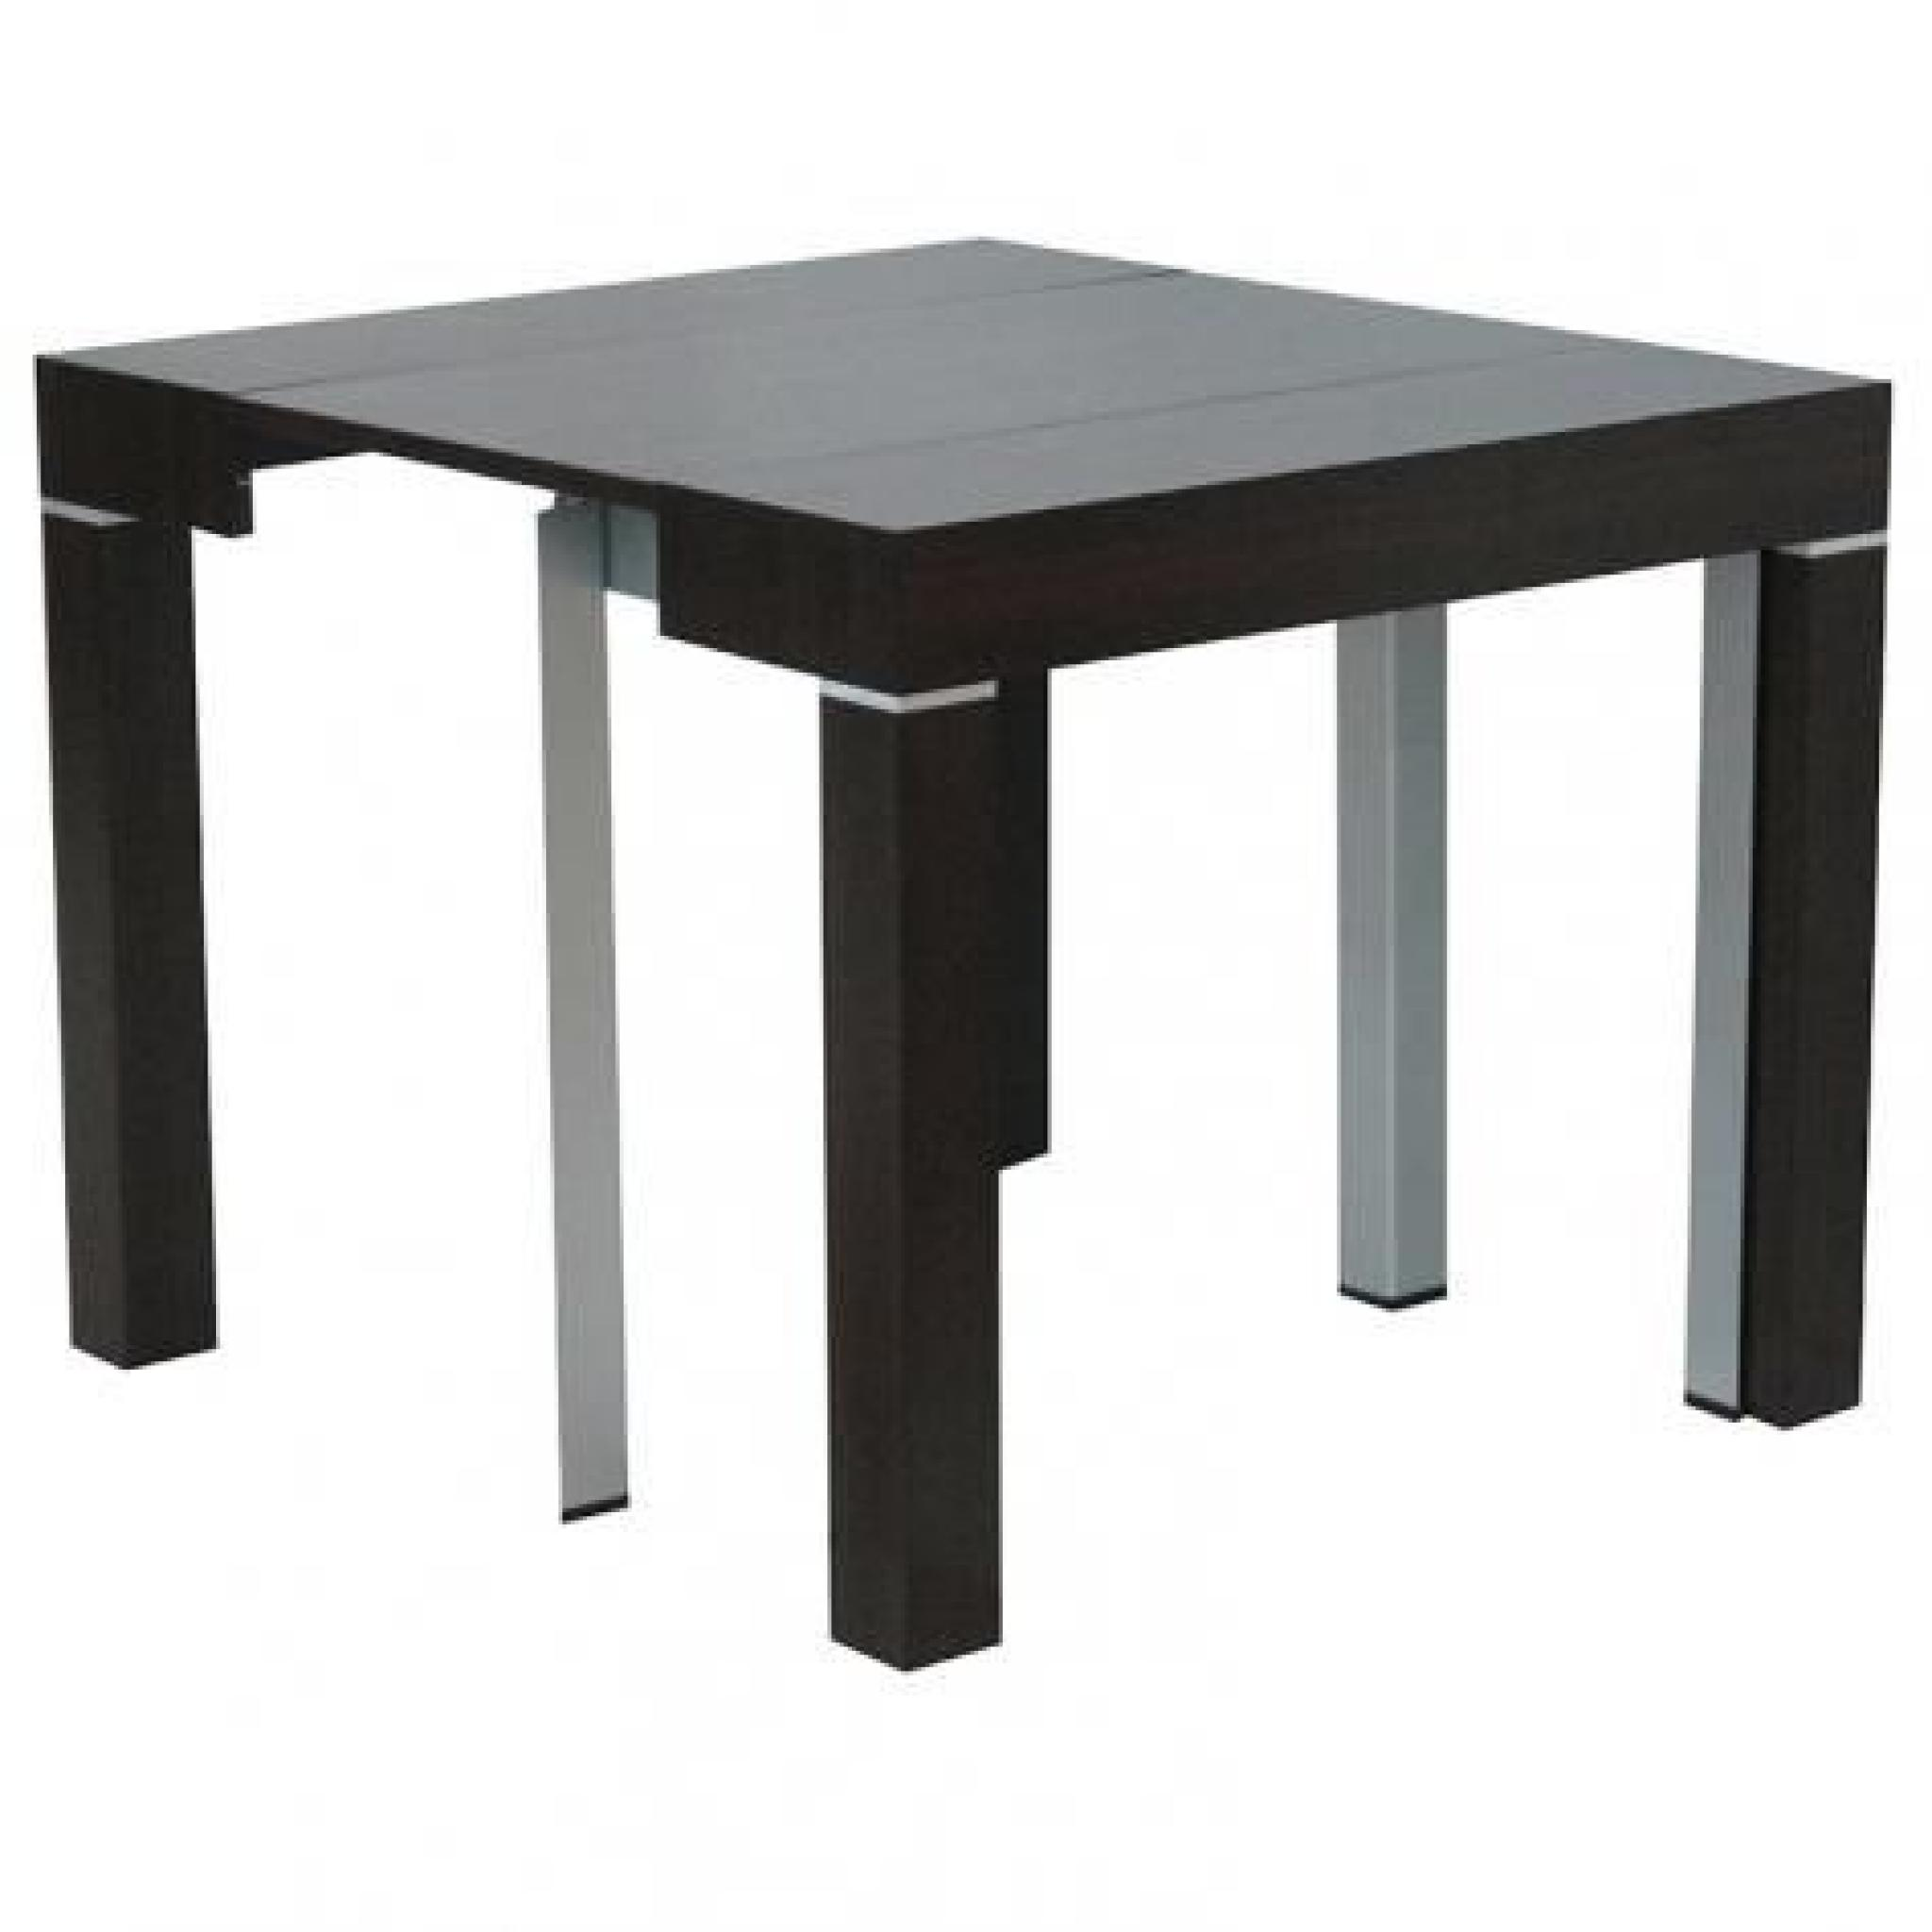 Table console extensible wenge avec 4 rallonges alesia for Table extensible avec rallonges integrees